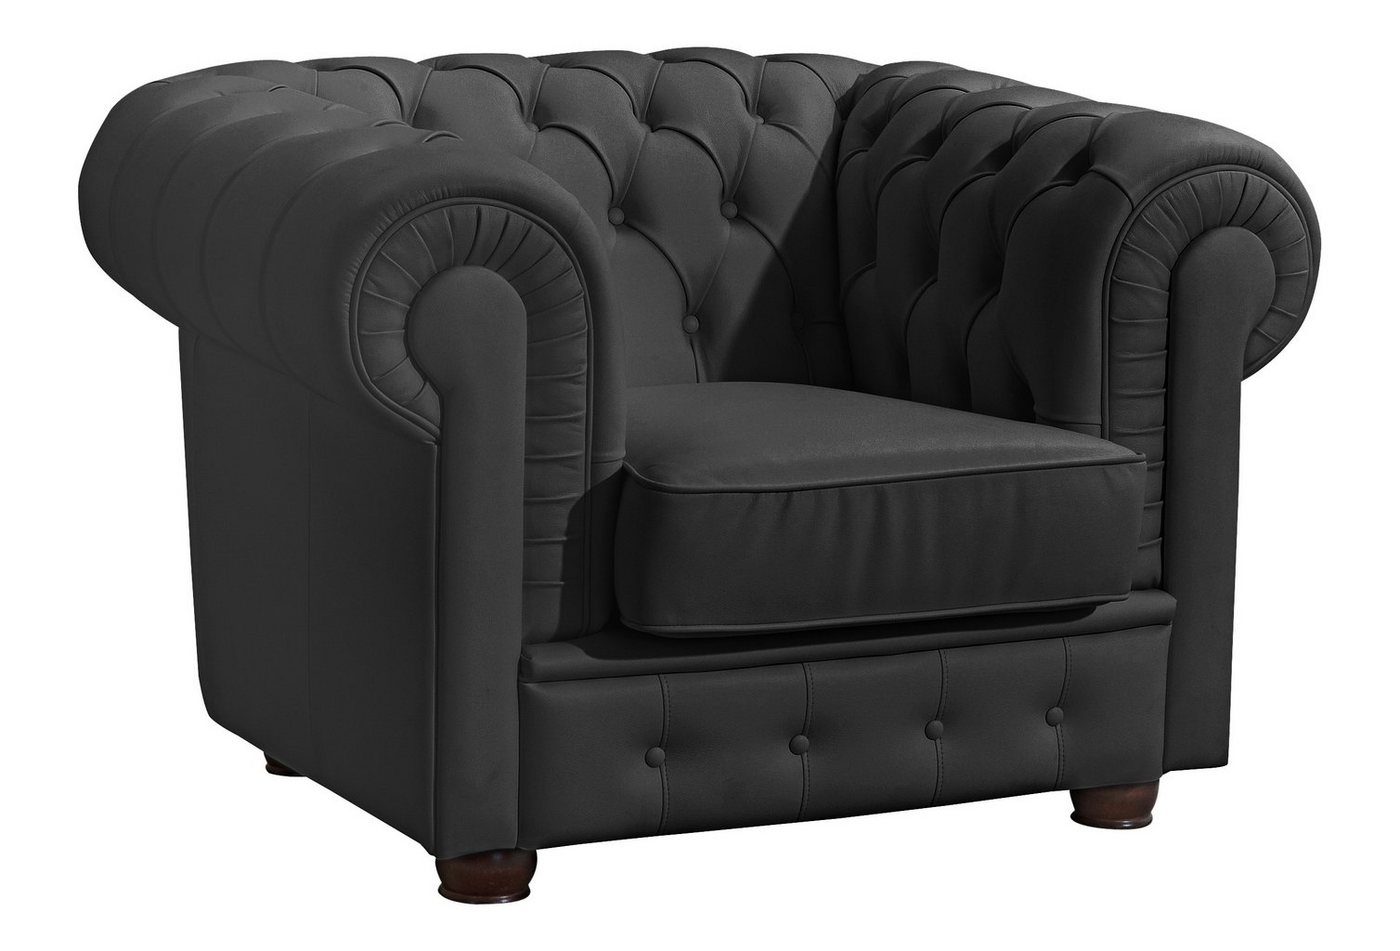 MAX WINZER® chesterfield-fauteuil Windsor, met chique capitonnage